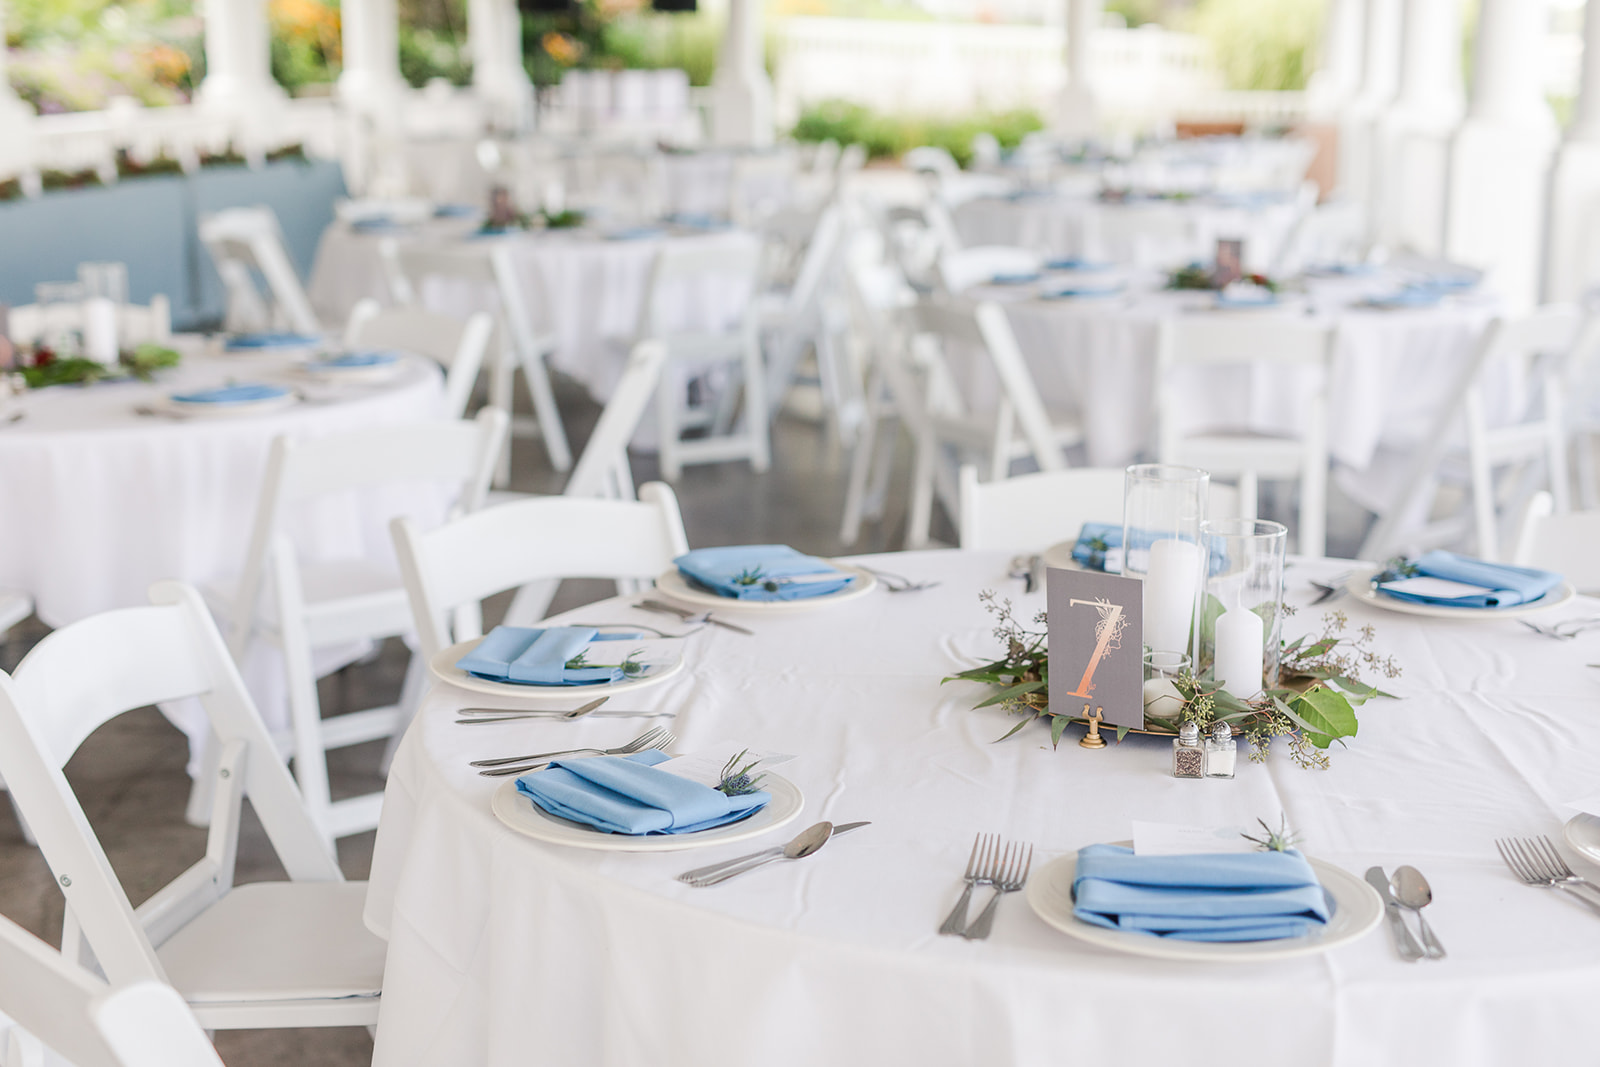 Tables set outside at a Bay Pointe Inn wedding in Shelbyville, Michigan